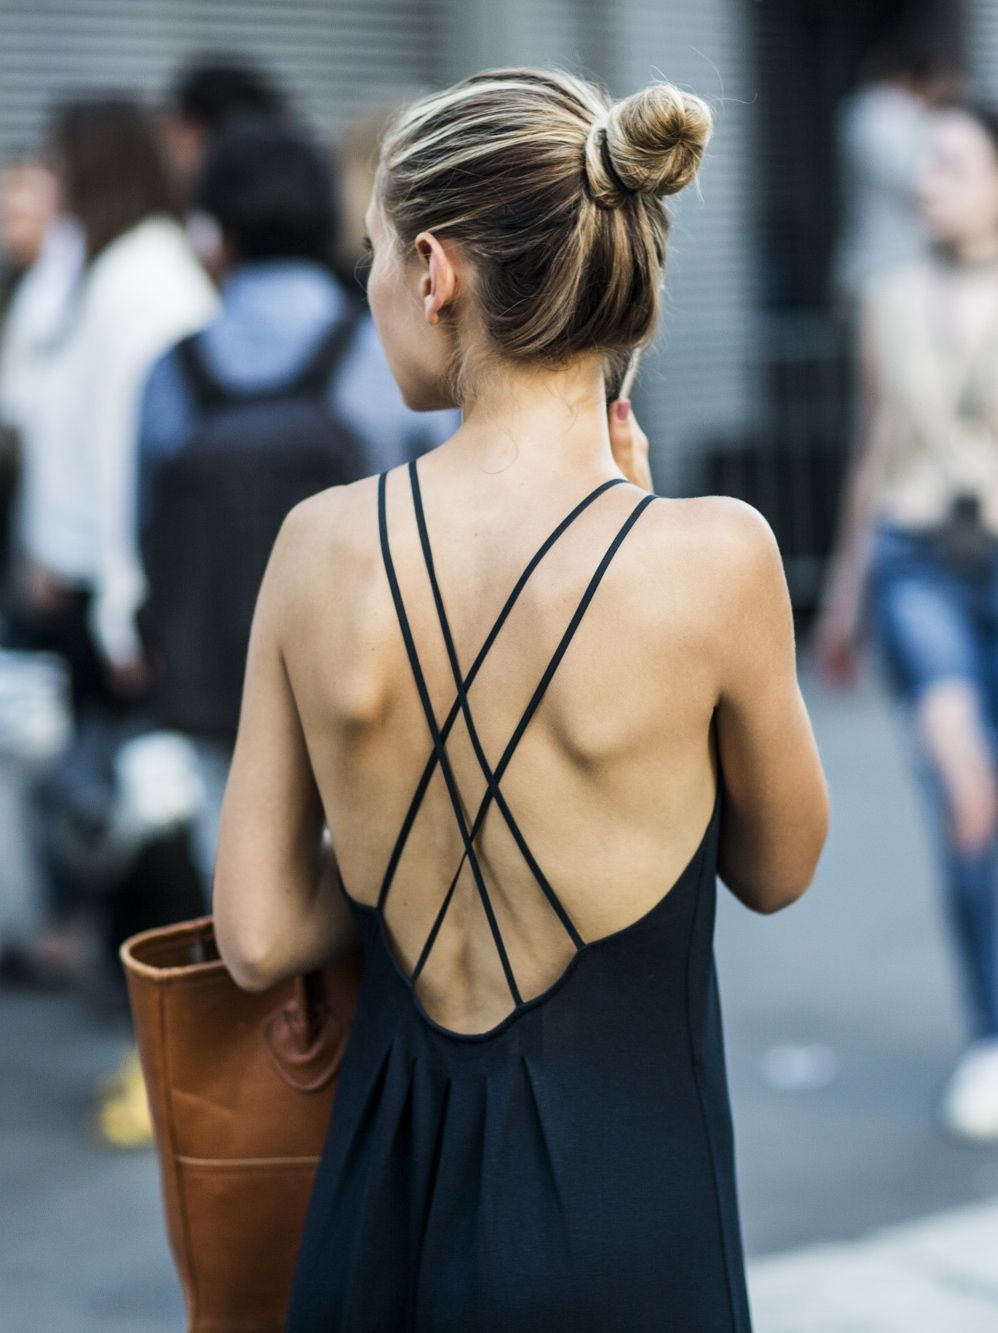 This criss-cross back detail is seriously perfection